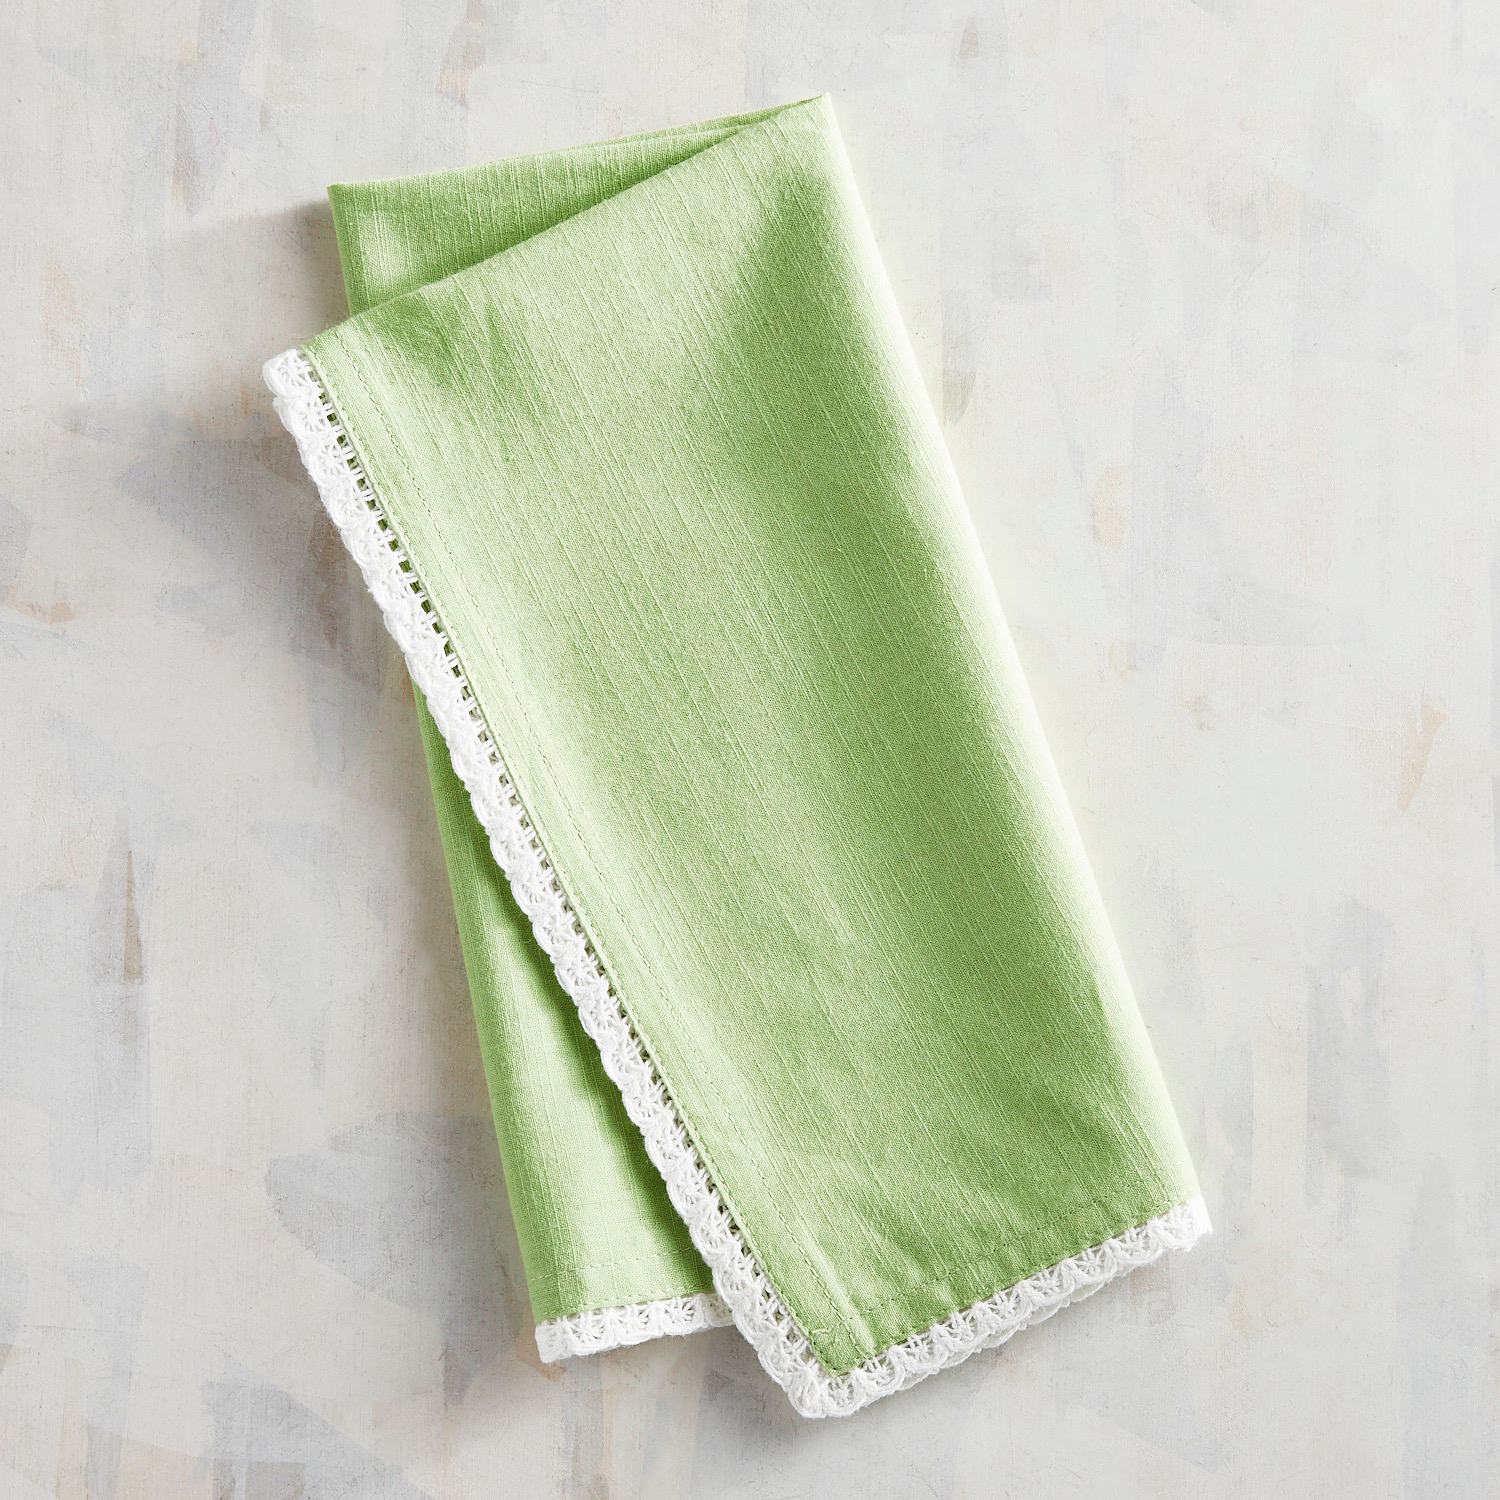 Green Napkin with Lace Trim